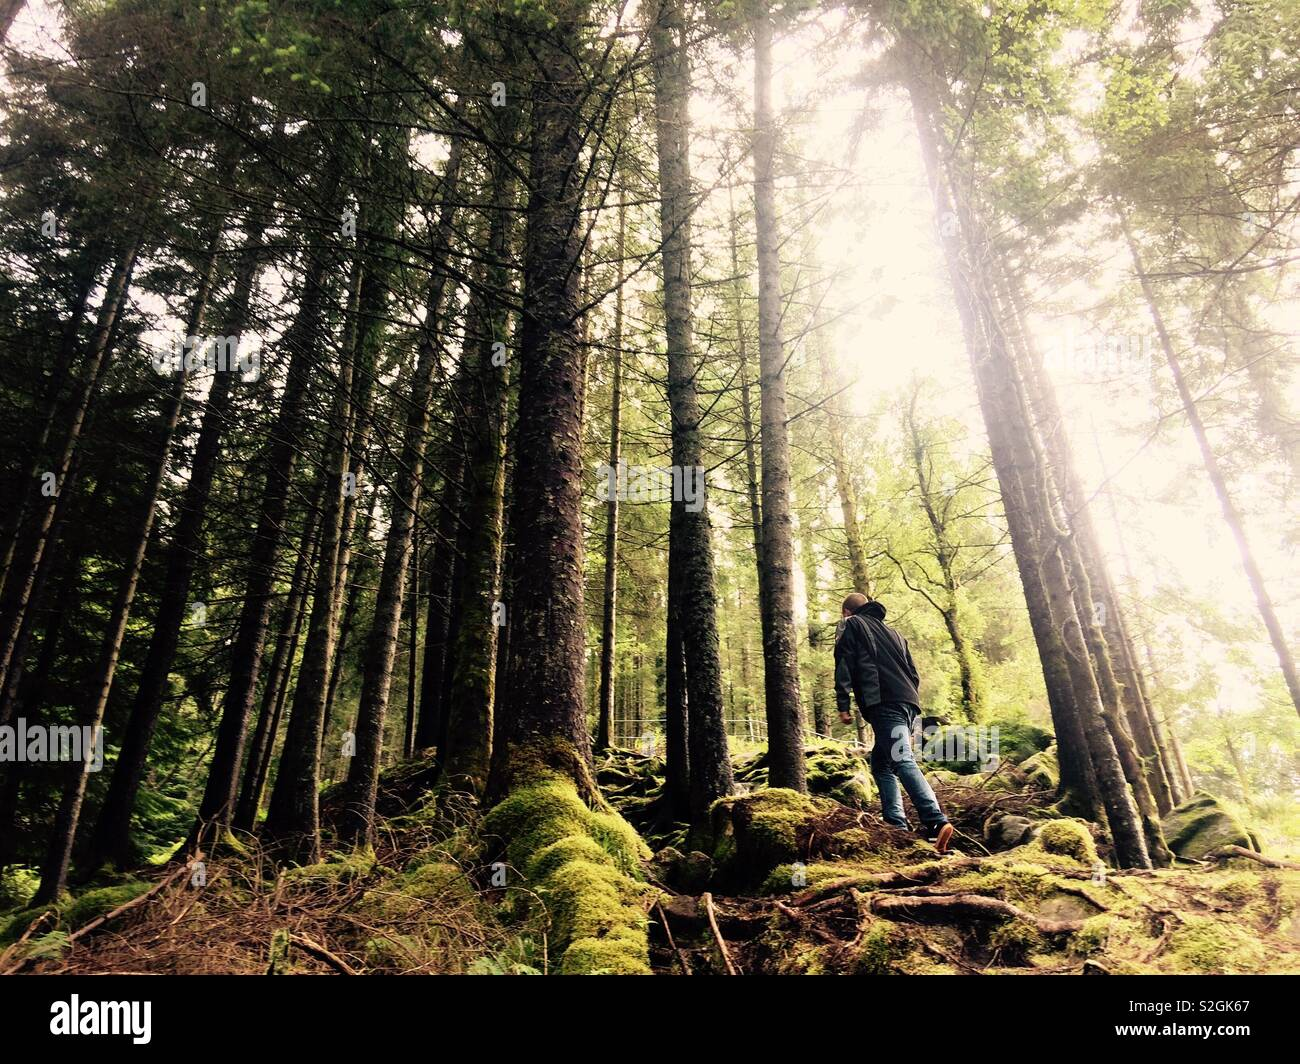 Man Hiking in a forest near Bergen Norway - Stock Image